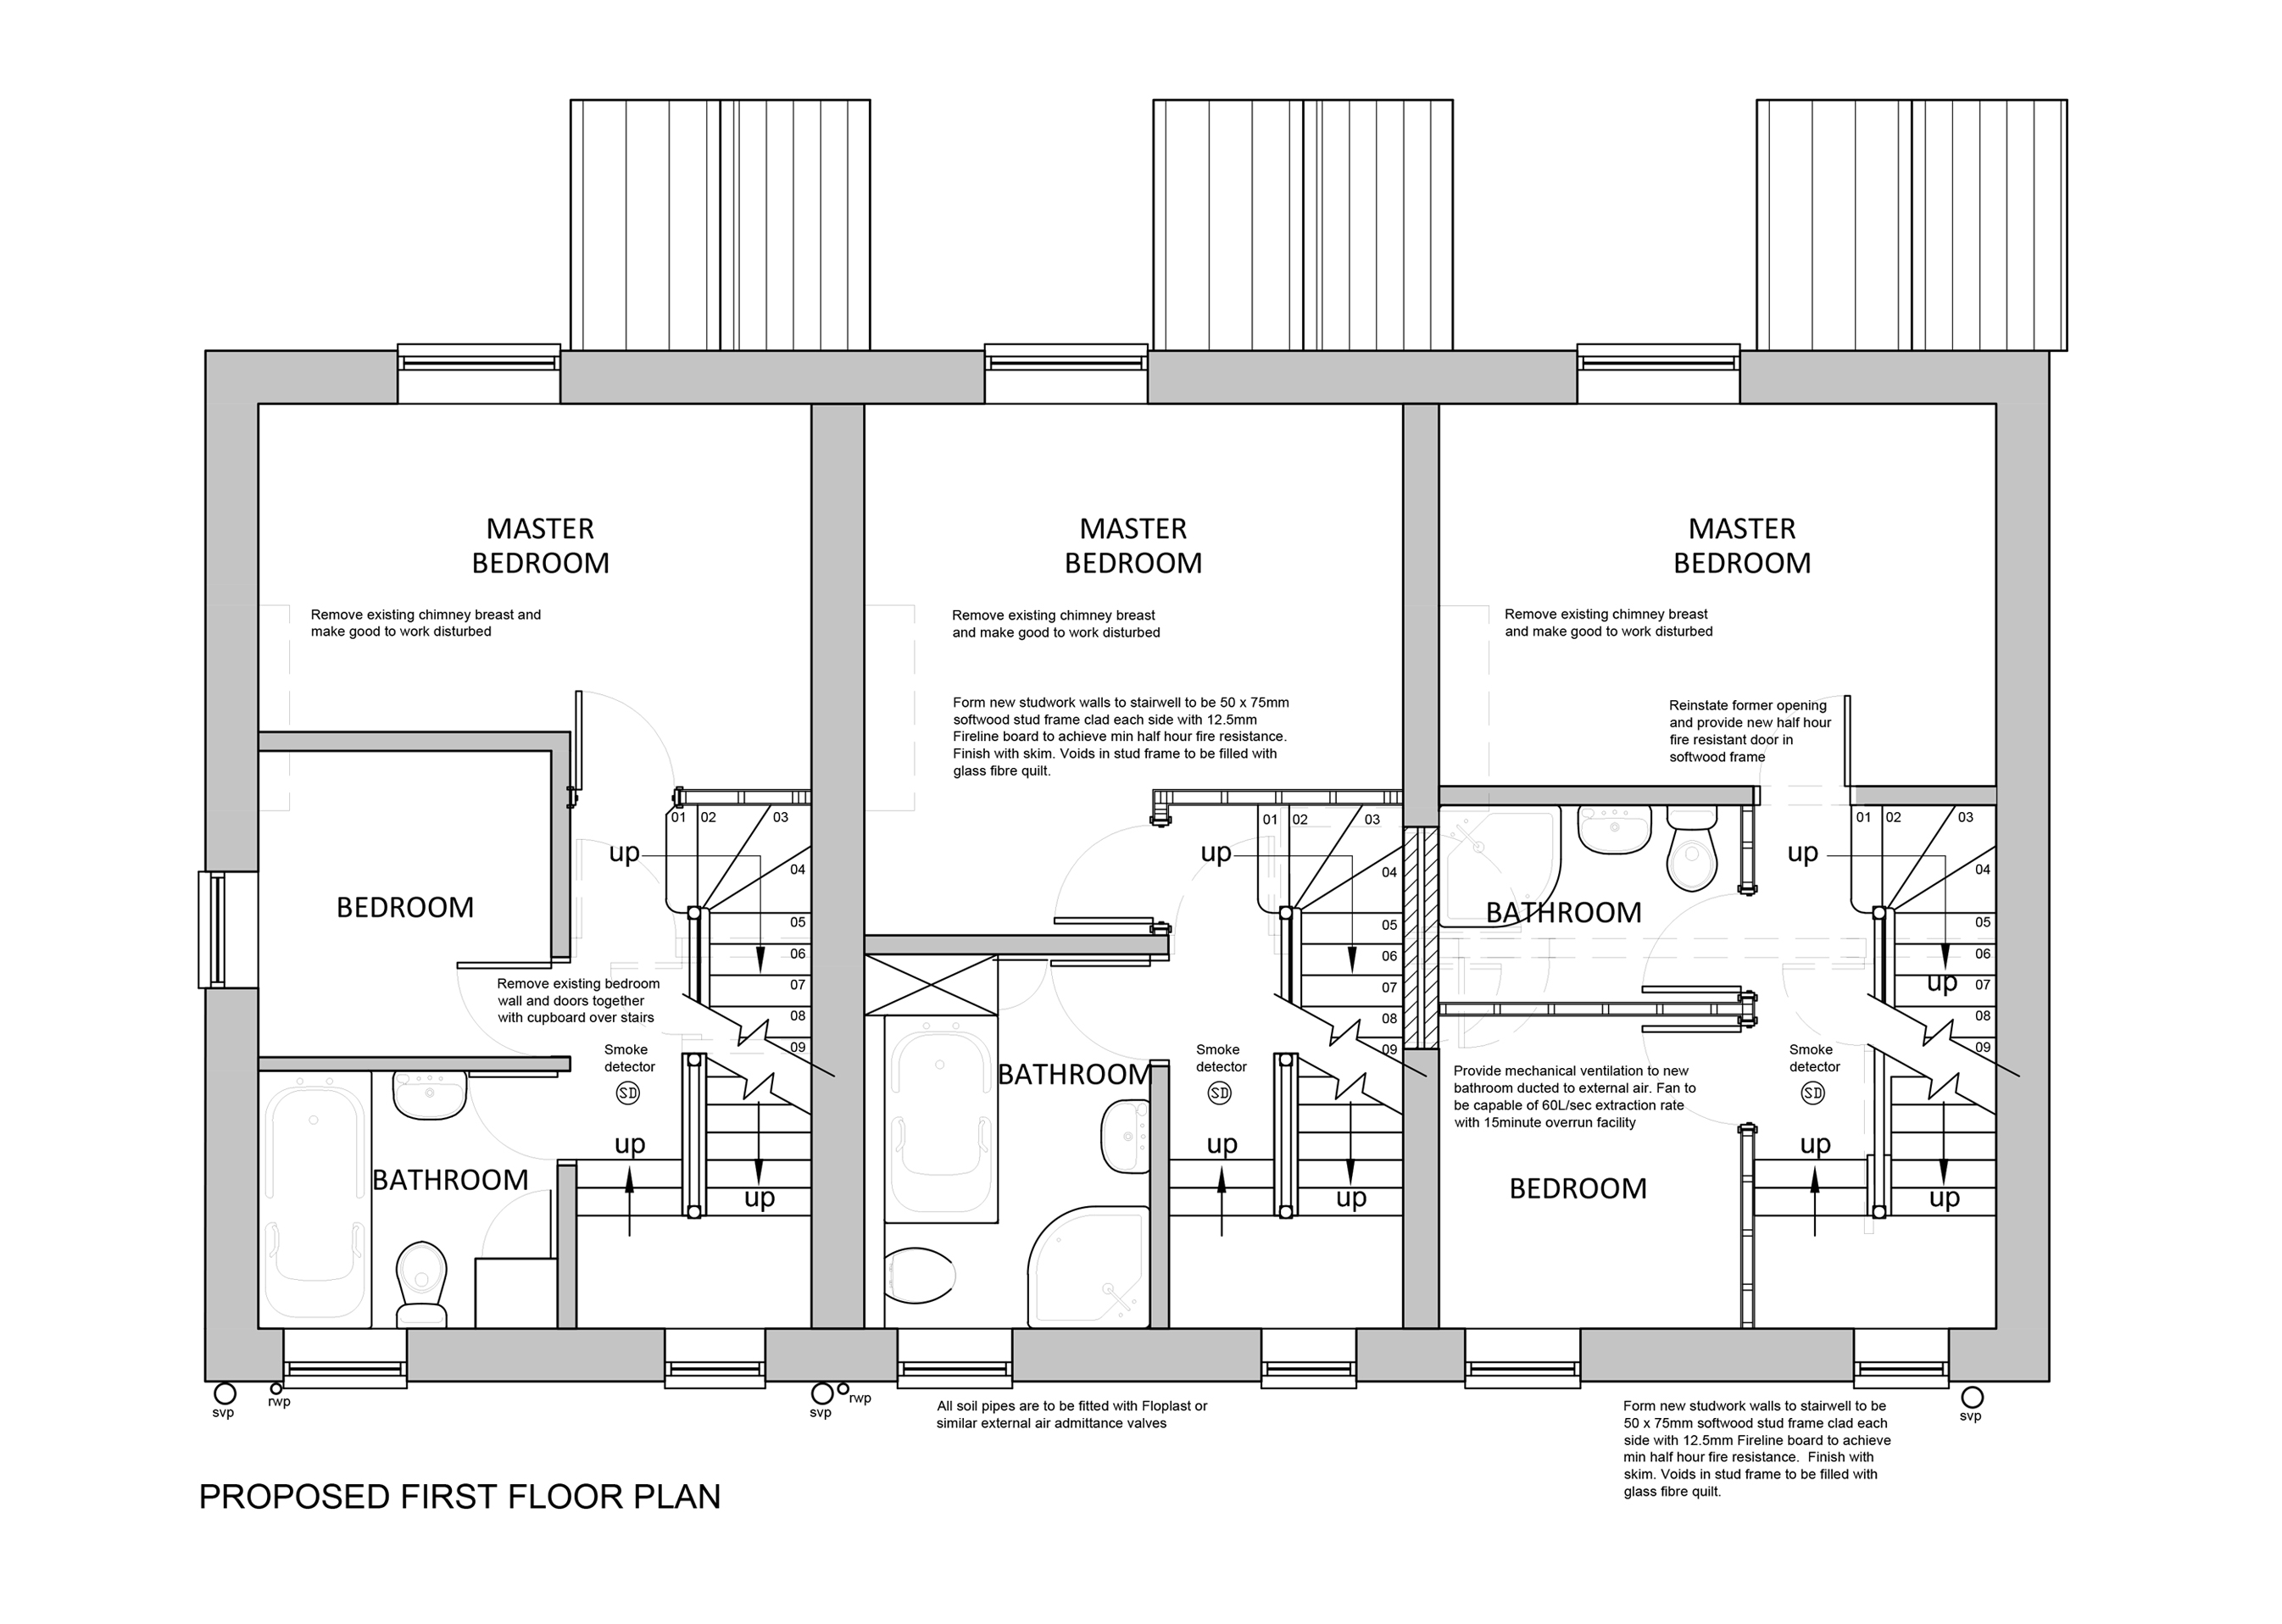 Proposed First Floor Layout